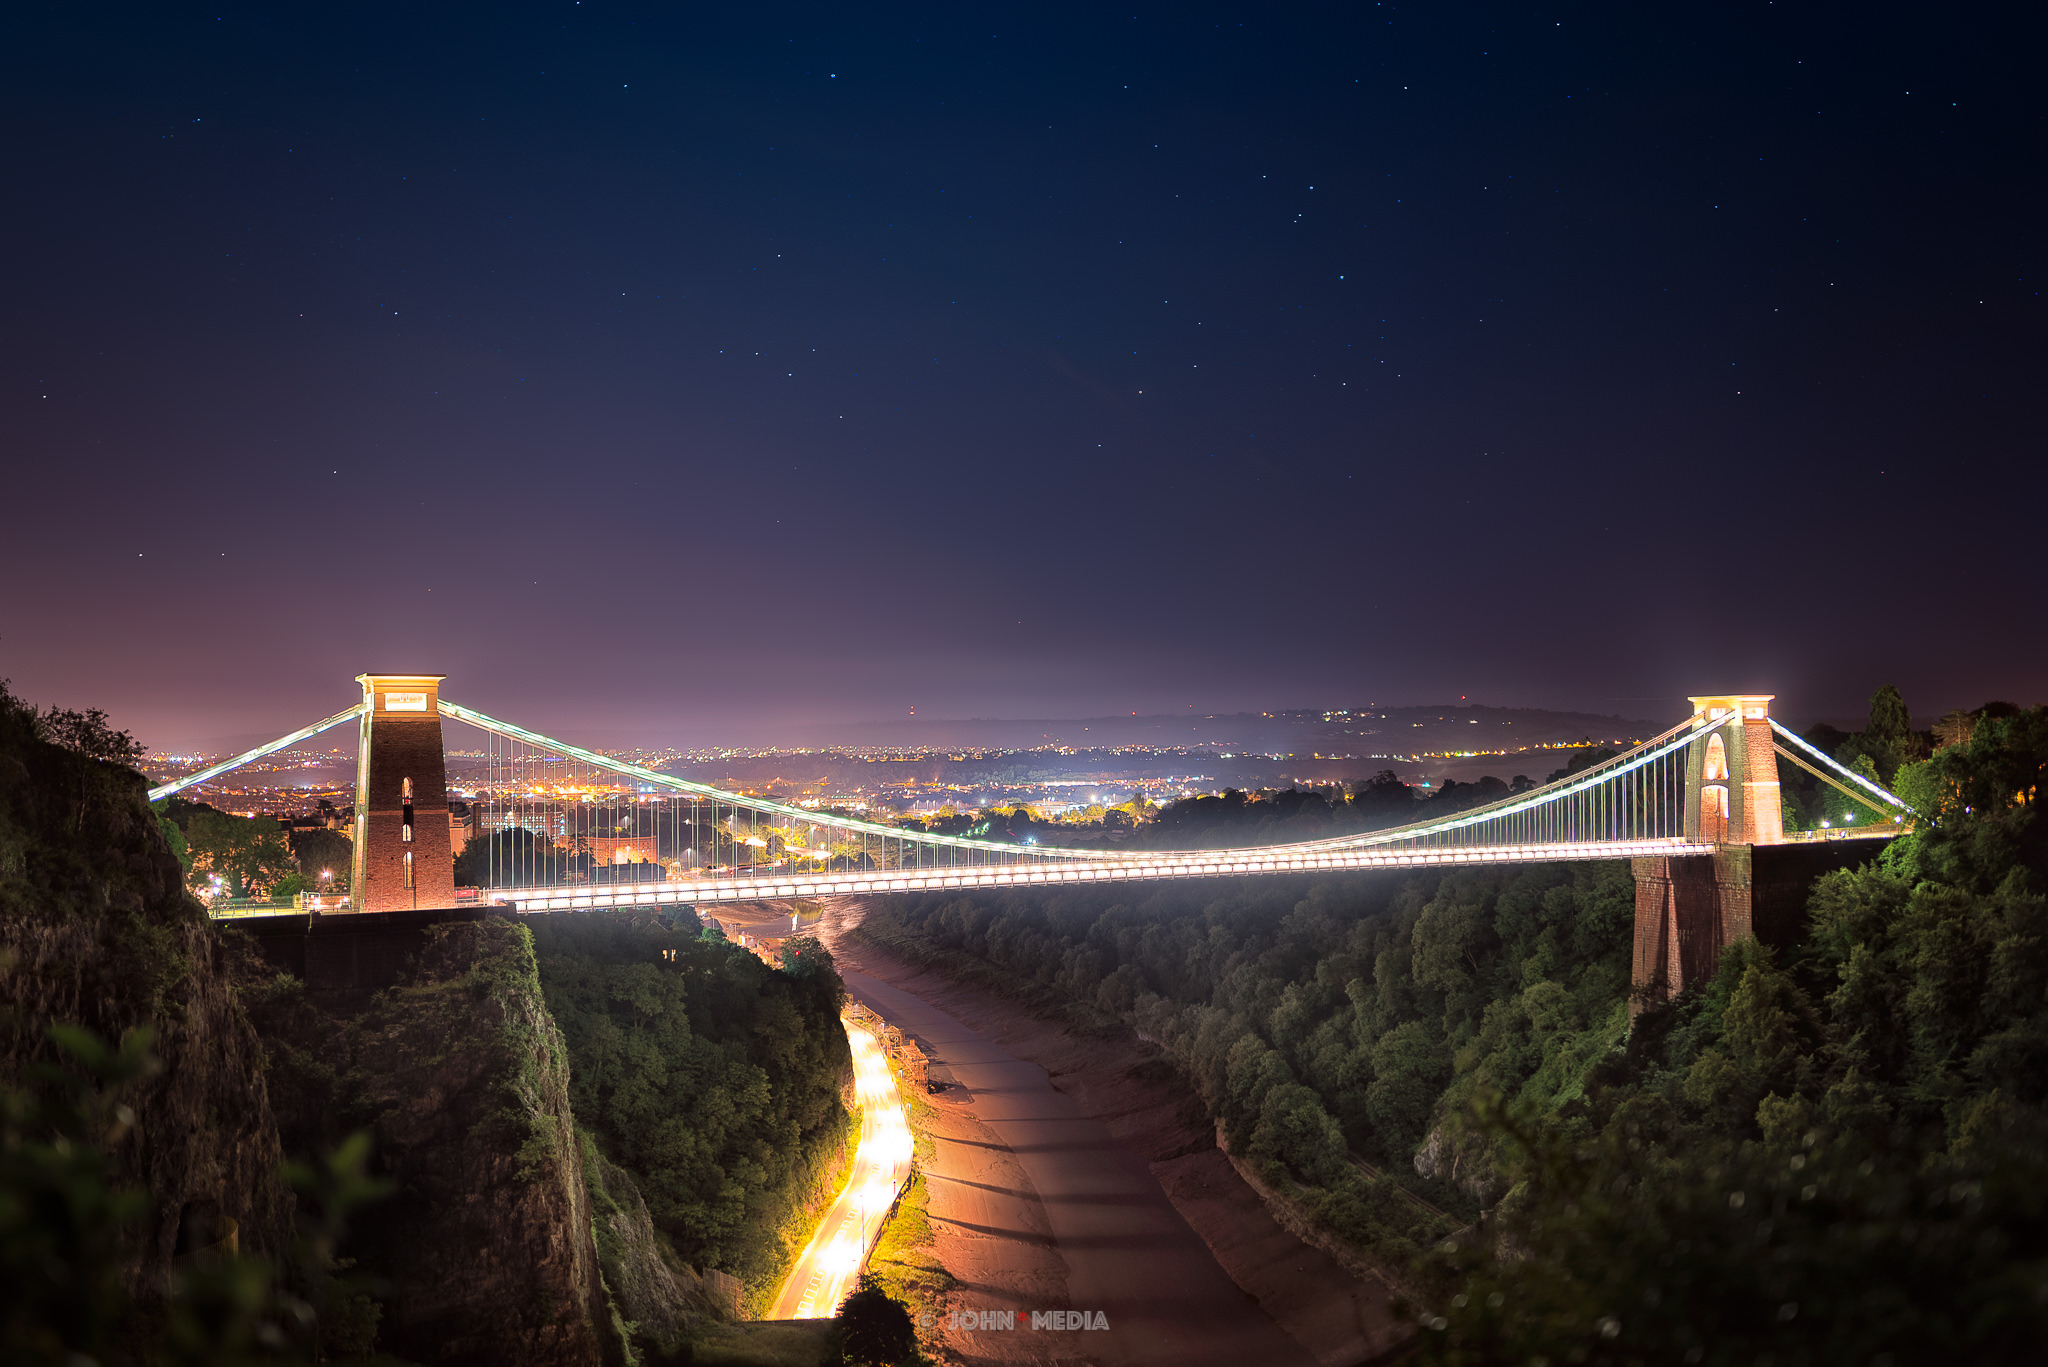 Clifton Suspension Bridge by night - Astro